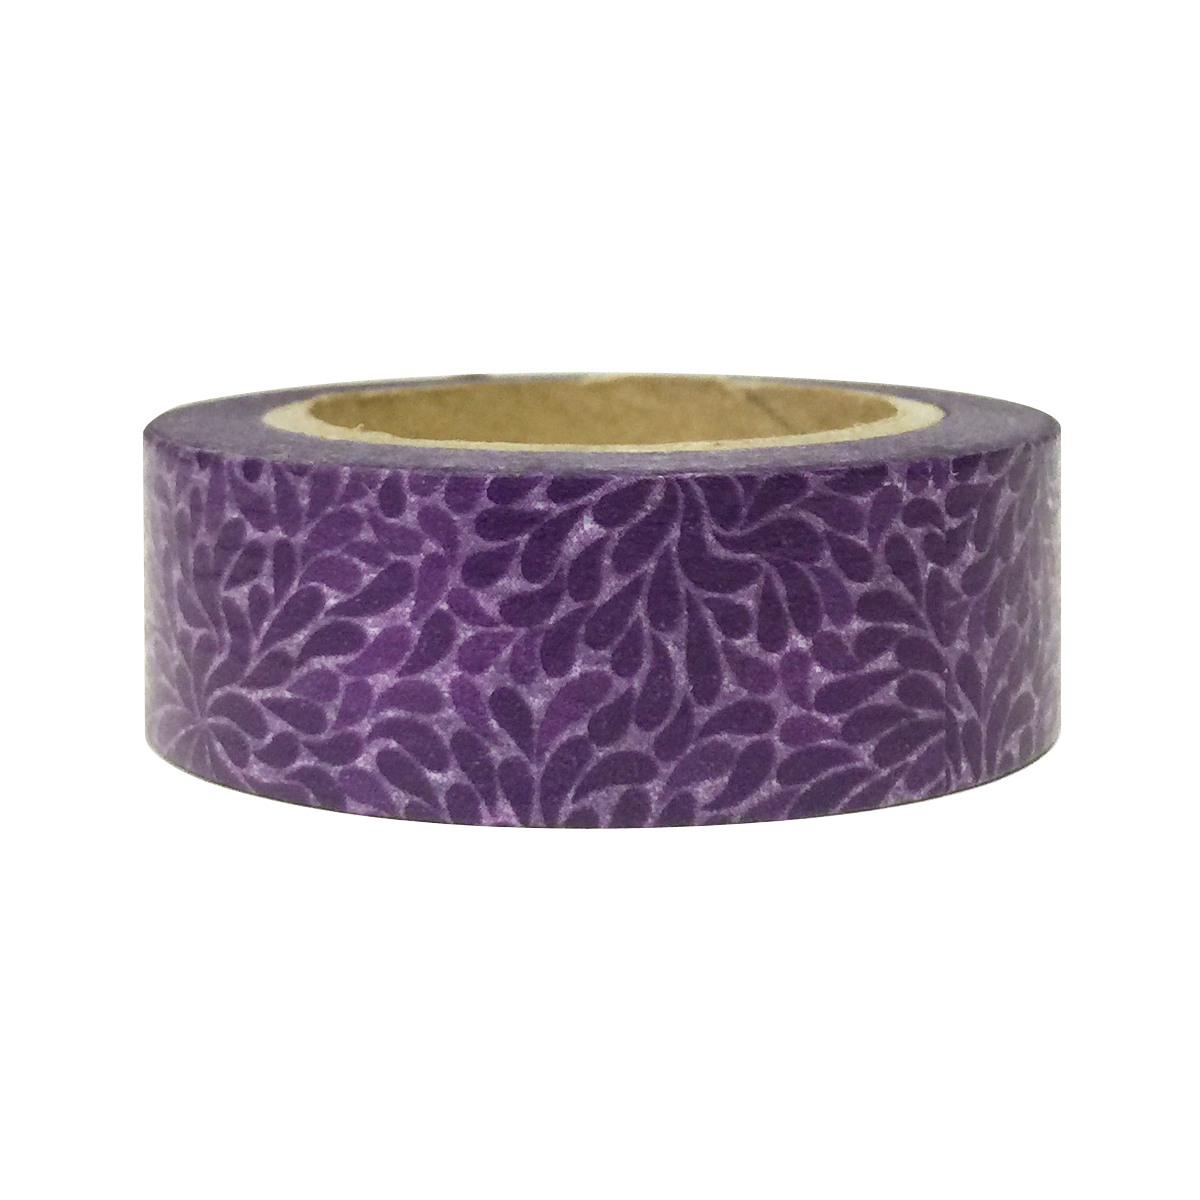 Wrapables® Colorful Patterns Washi Masking Tape, Purple Bloom